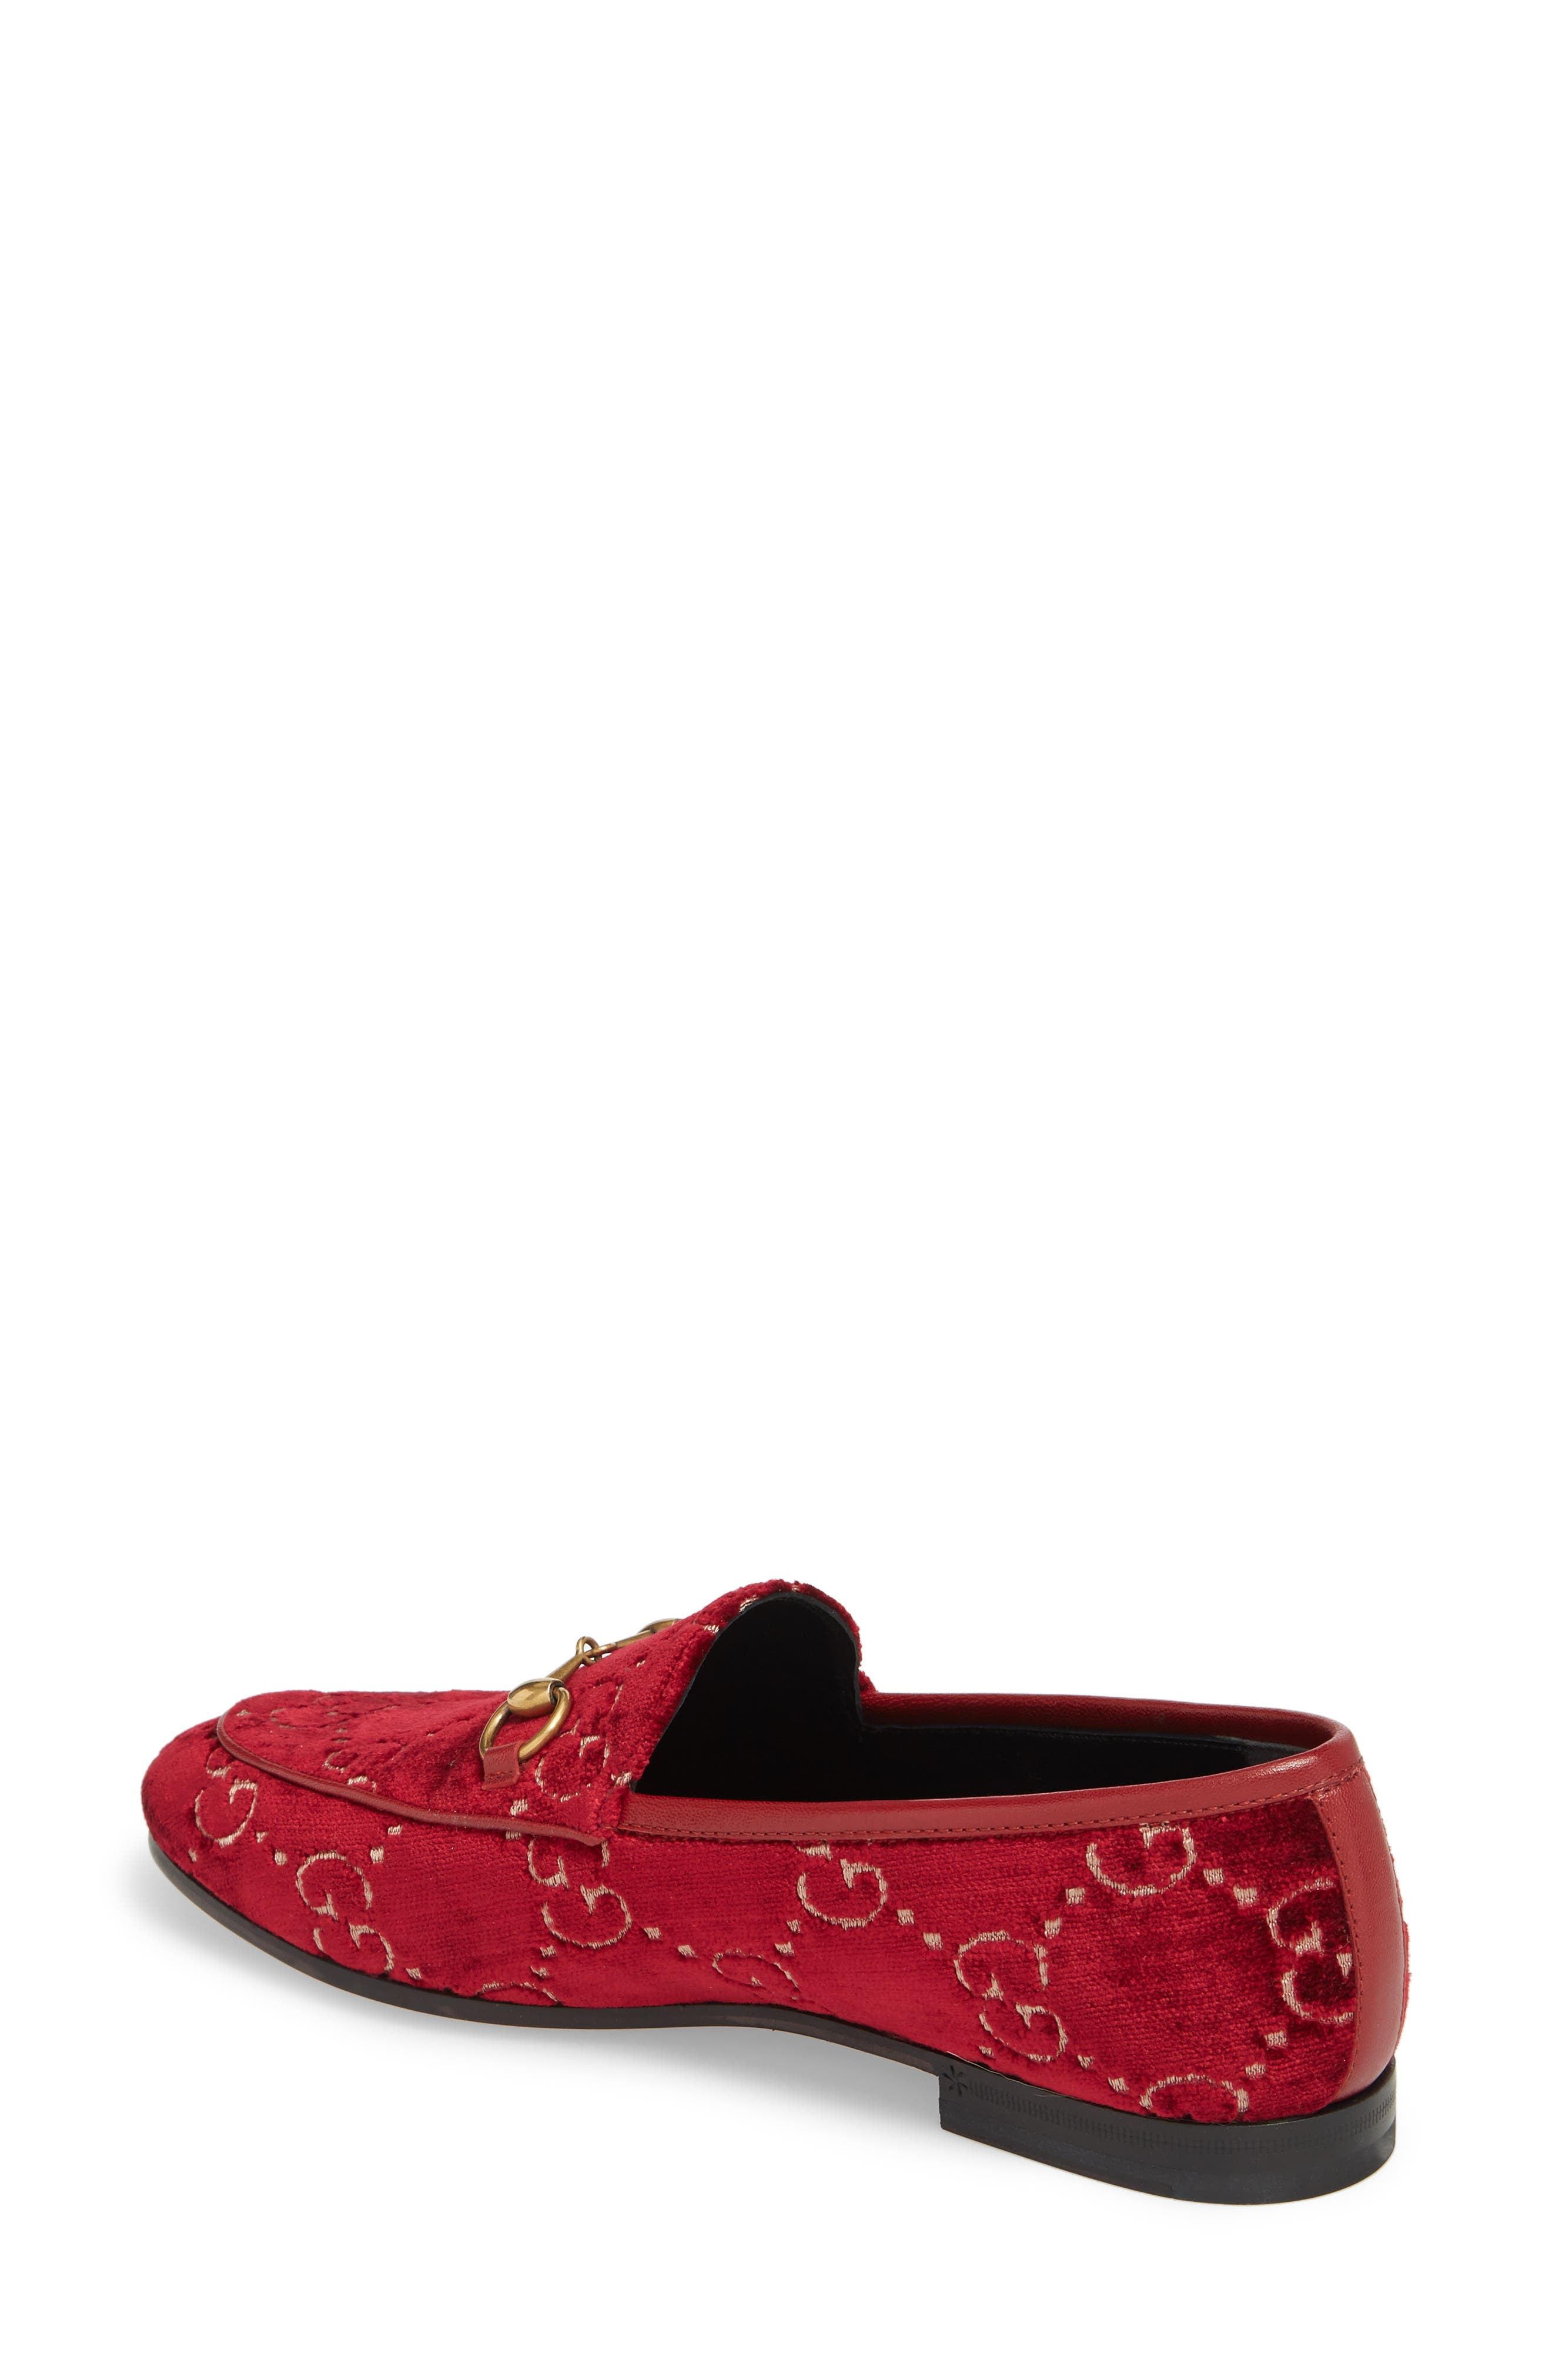 Jordaan Loafer,                             Alternate thumbnail 2, color,                             Red